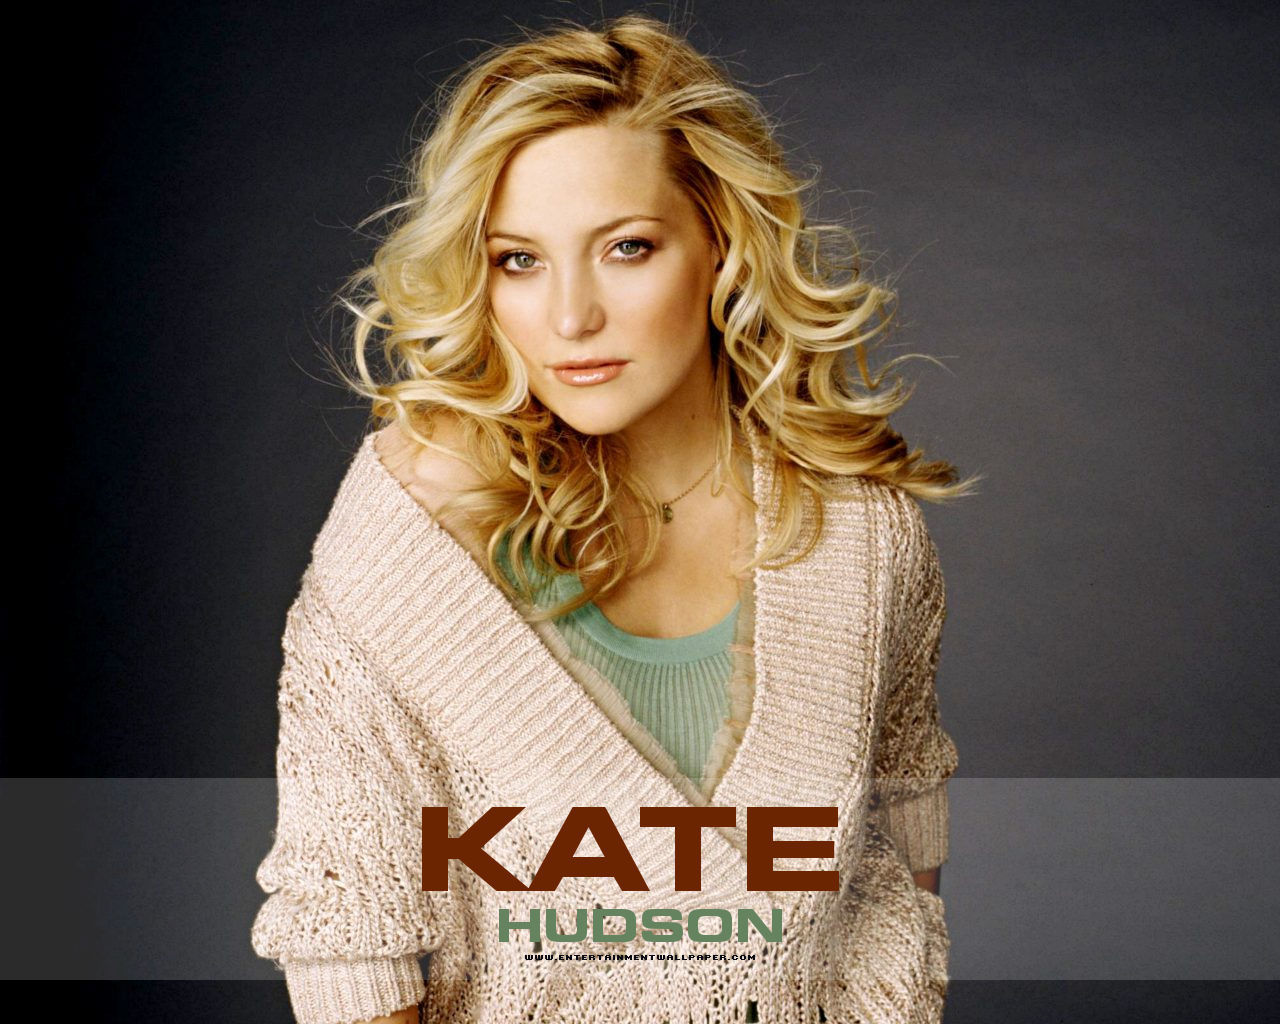 http://images2.fanpop.com/images/photos/3600000/Kate-kate-hudson-3649241-1280-1024.jpg